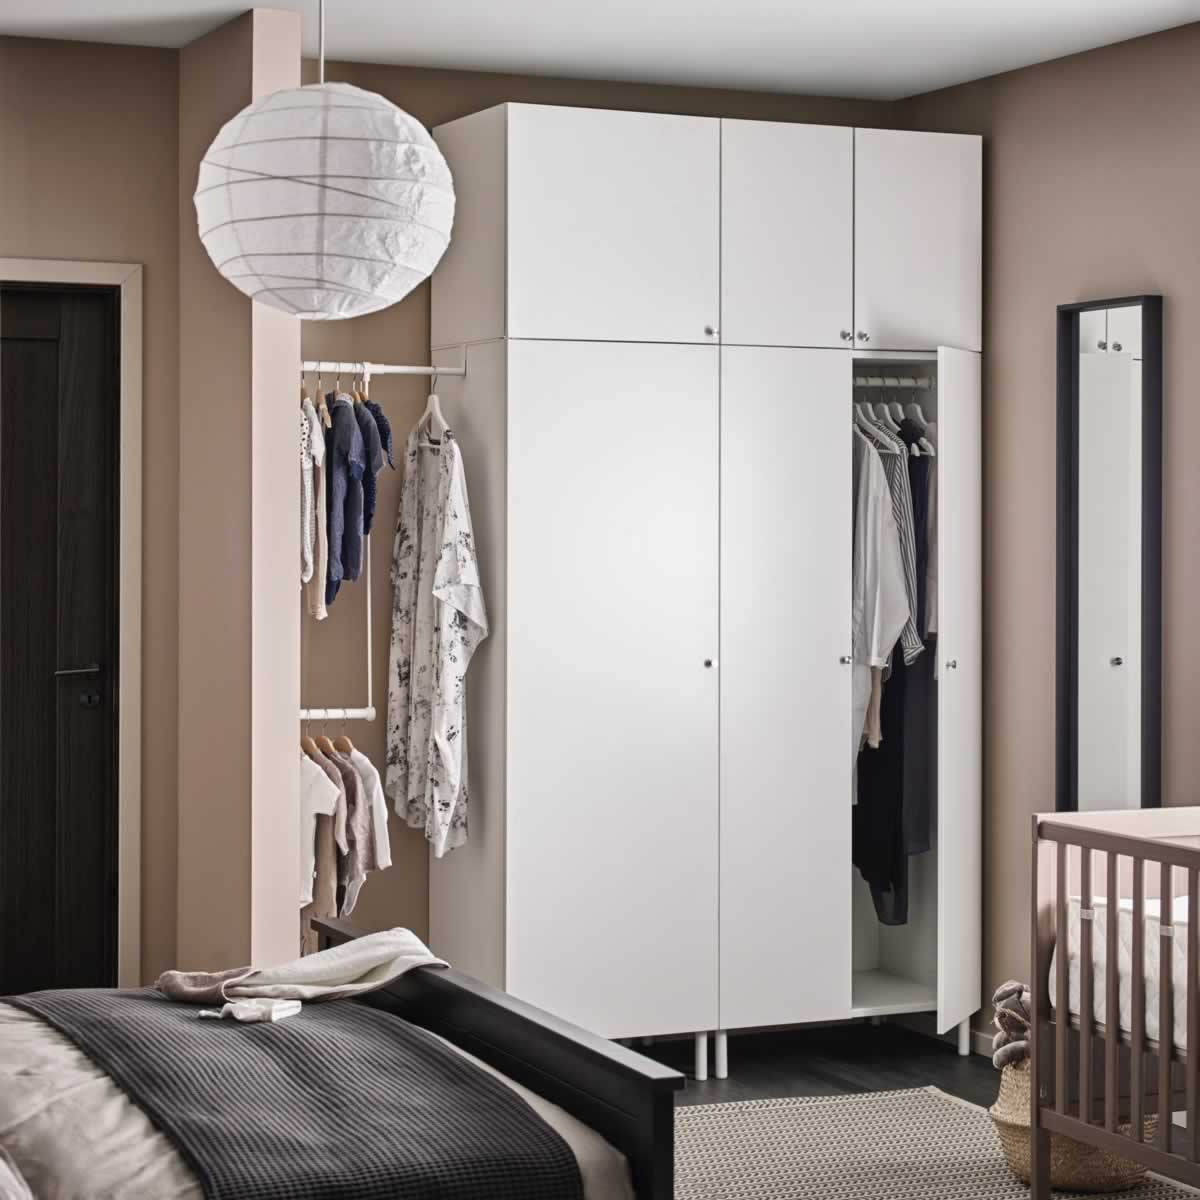 IKEA Ideas - PLATSA: flexible storage that works in small spaces